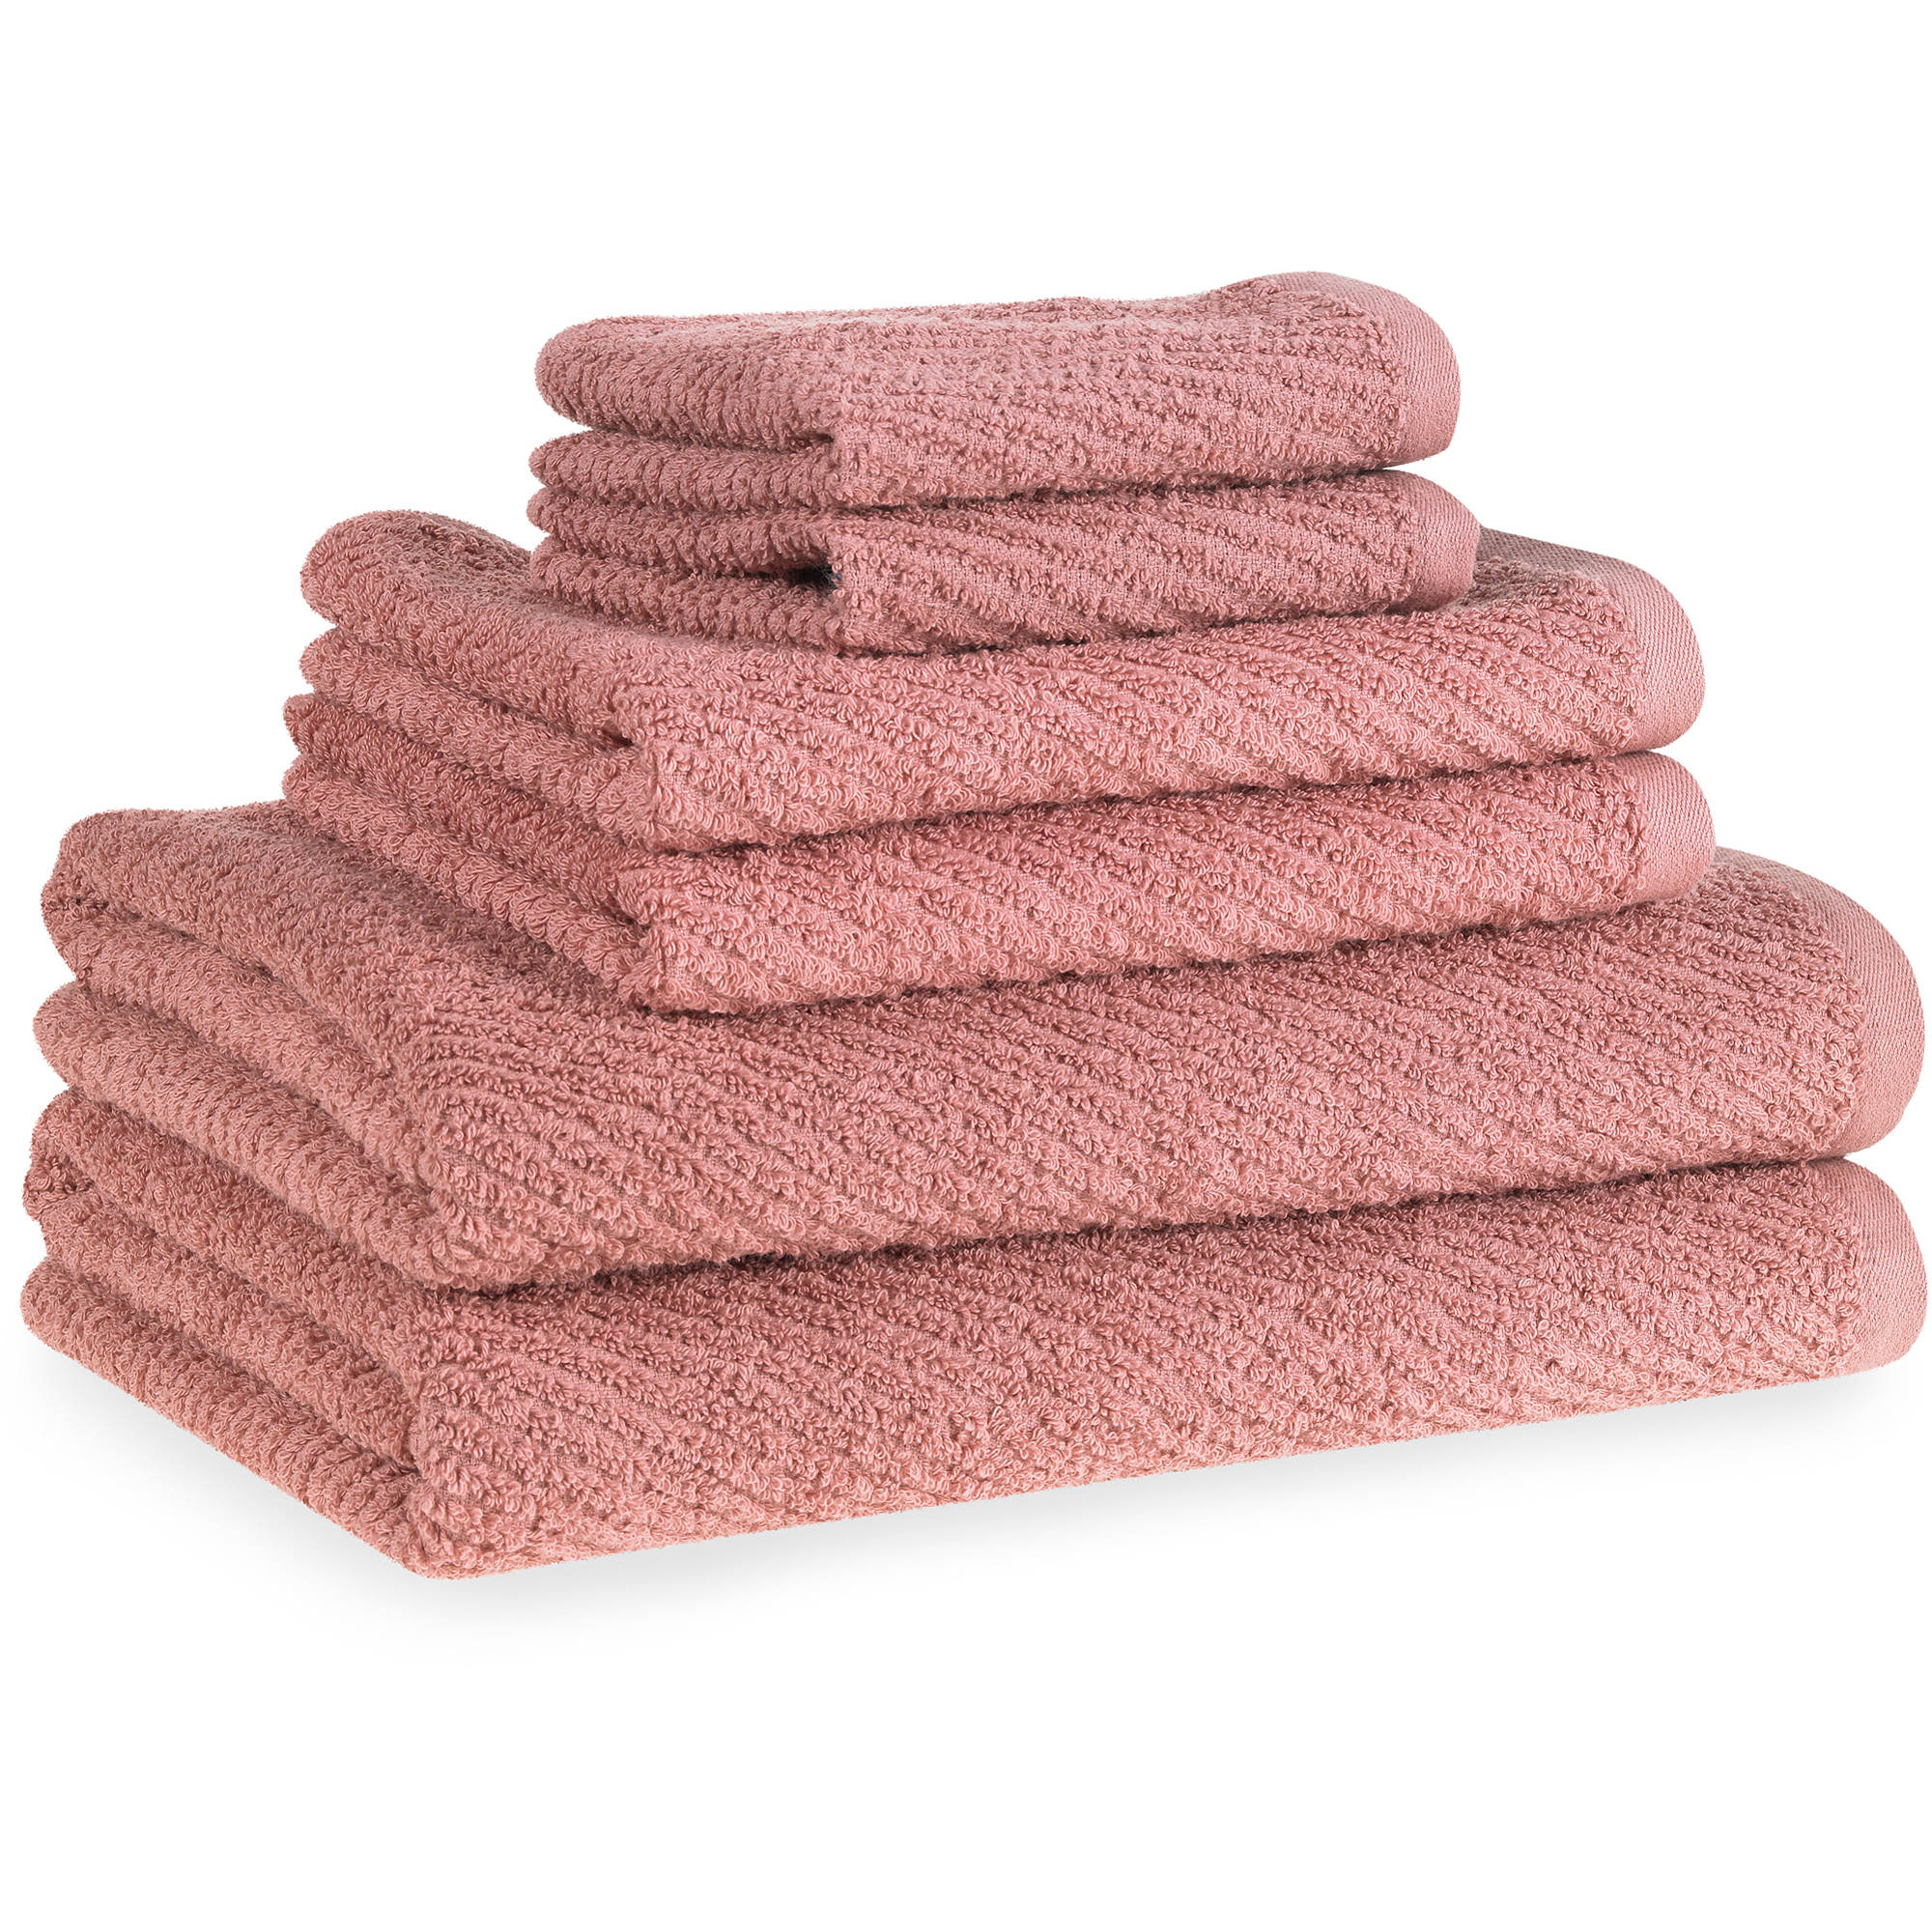 Flash-Dry Cotton Quick-Dry 6-Piece Towel Set